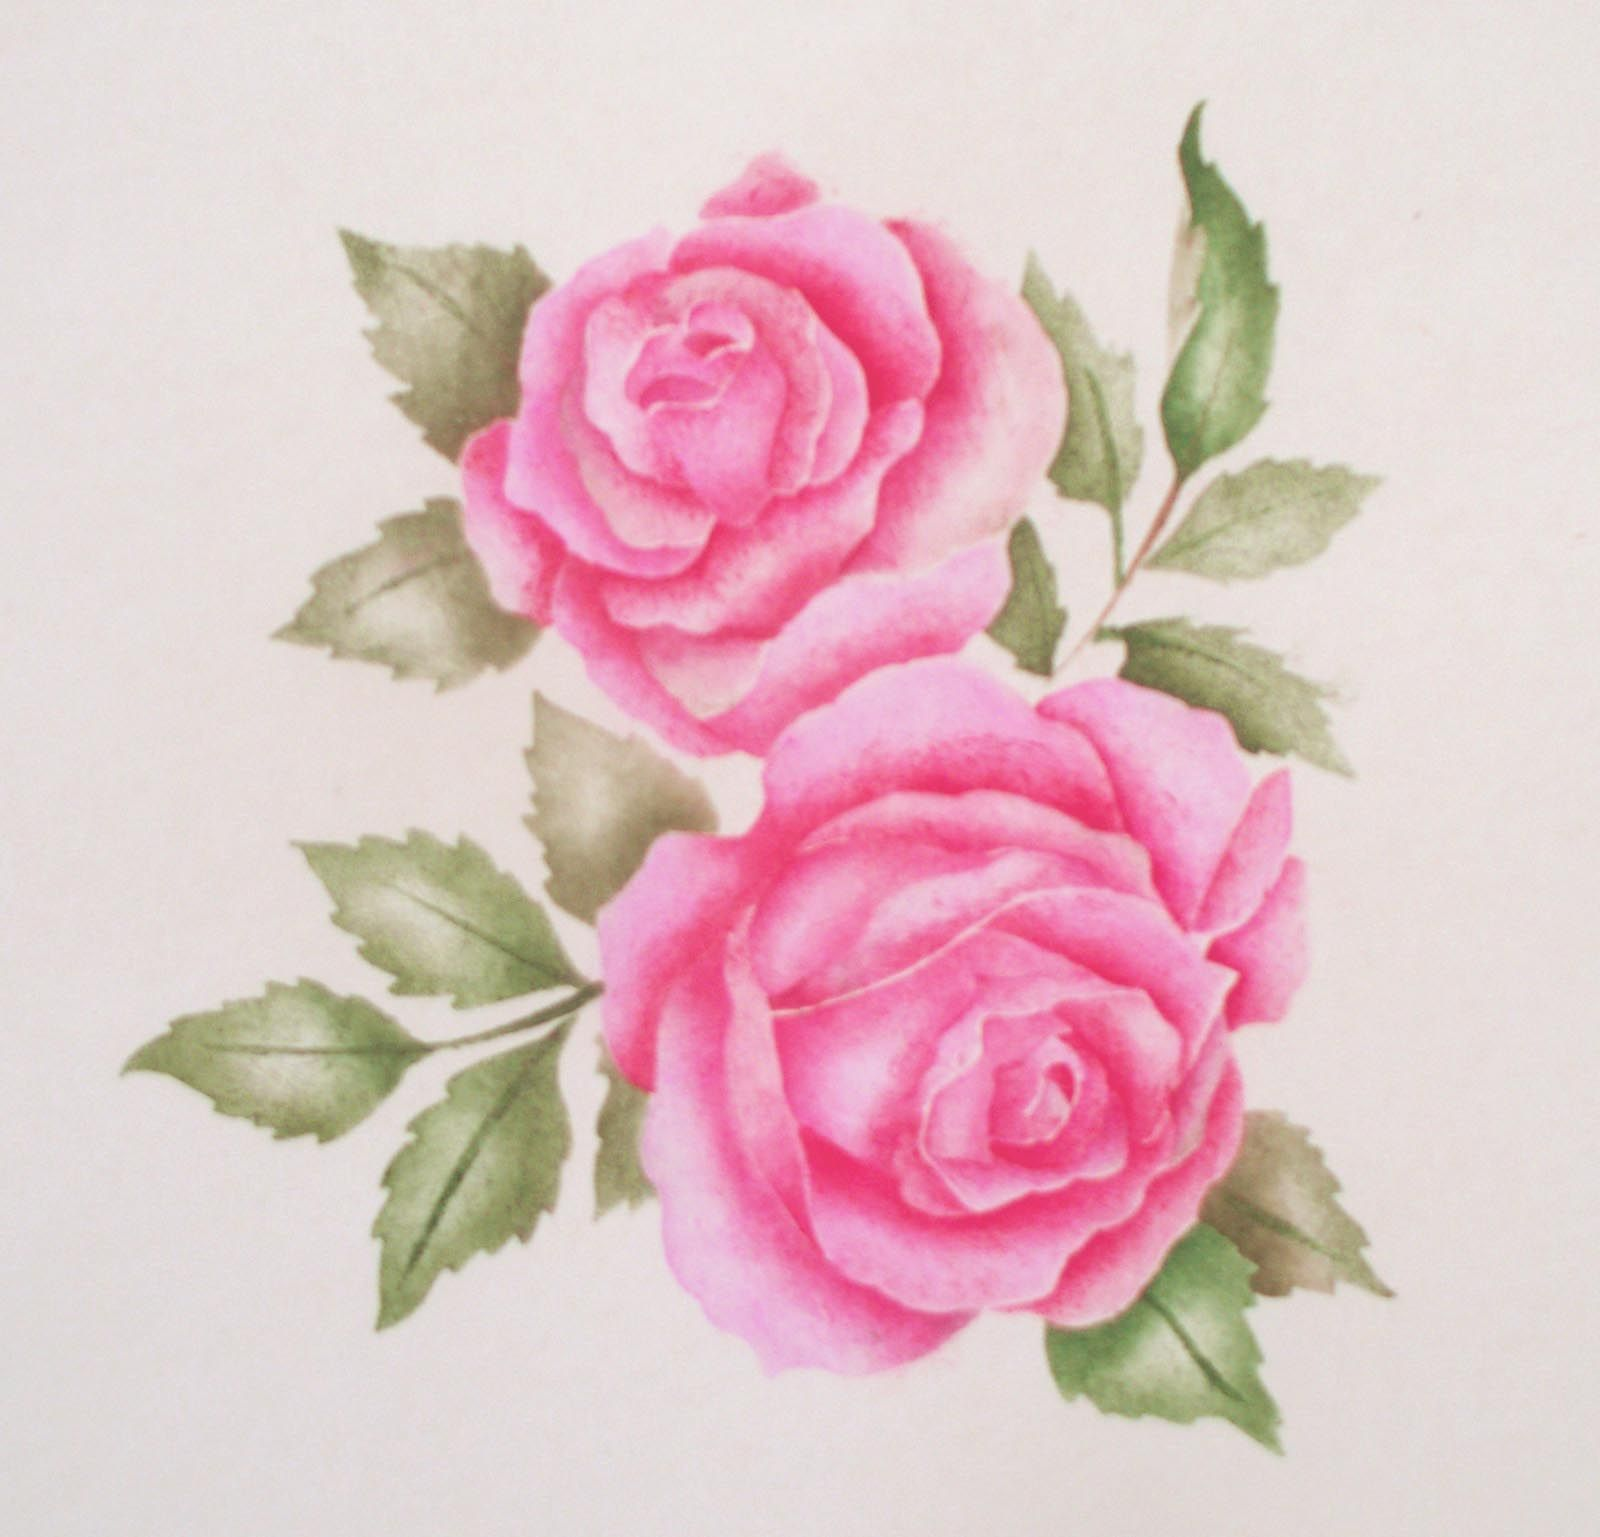 I love rose stencils and this one is a great design for furniture raised plaster stencil rose rose flower stencils for painting rose bouquet stencils rose stencil painting rose flower amipublicfo Gallery